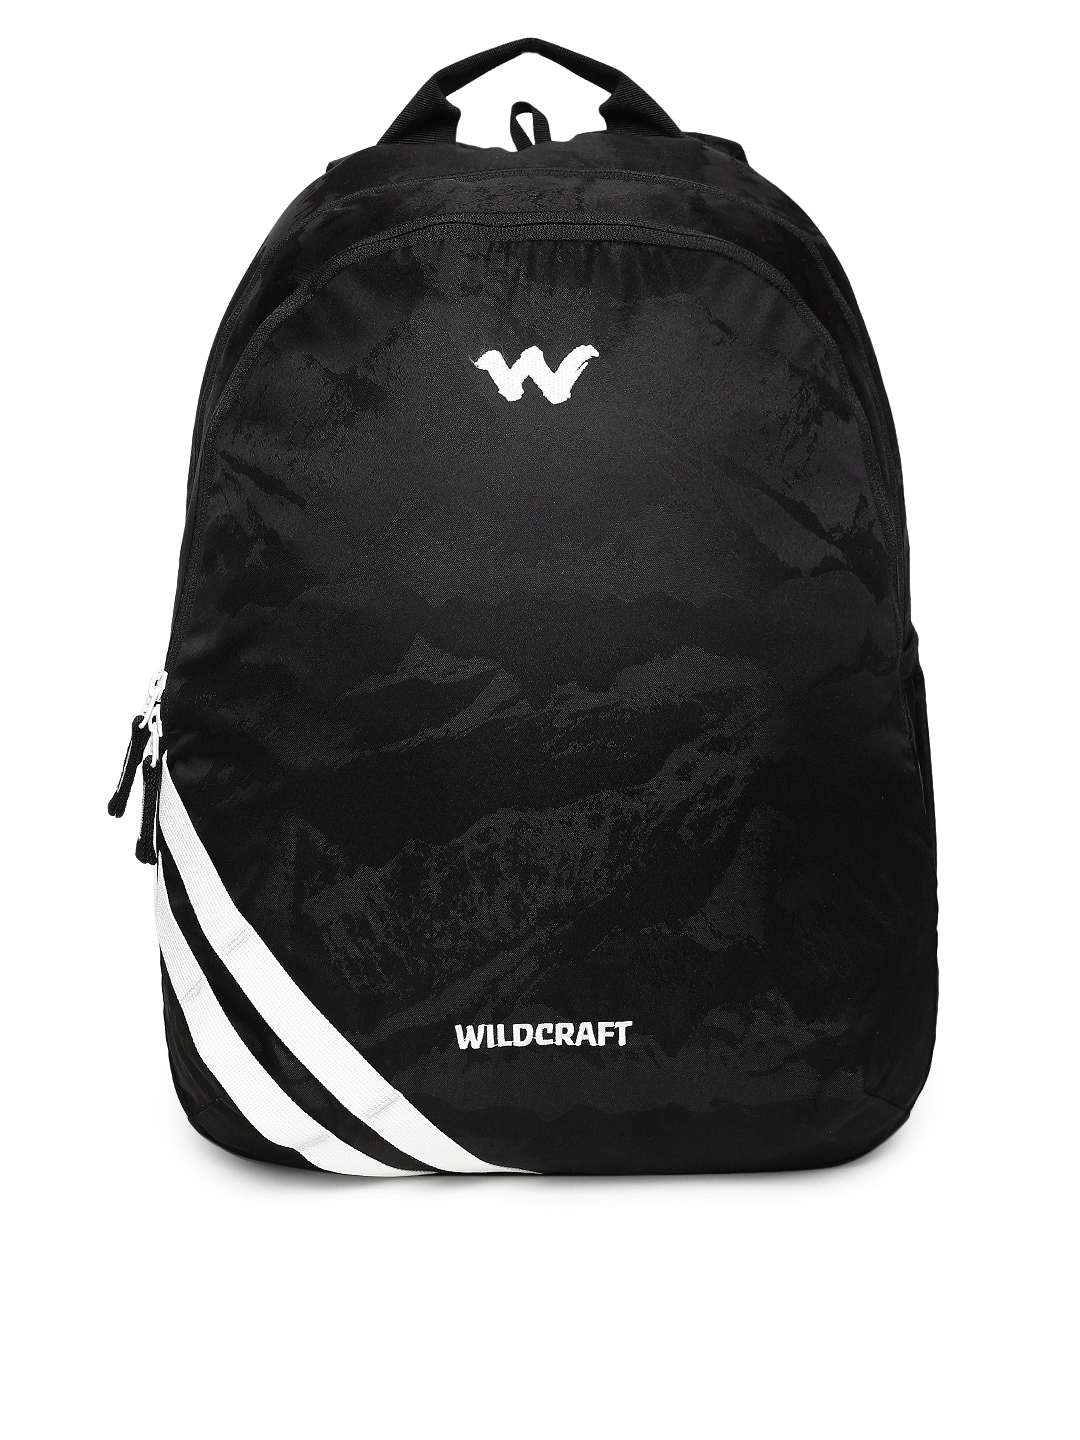 Wildcraft Backpacks Dhoti - Buy Wildcraft Backpacks Dhoti online in India 67c47267d6c1e